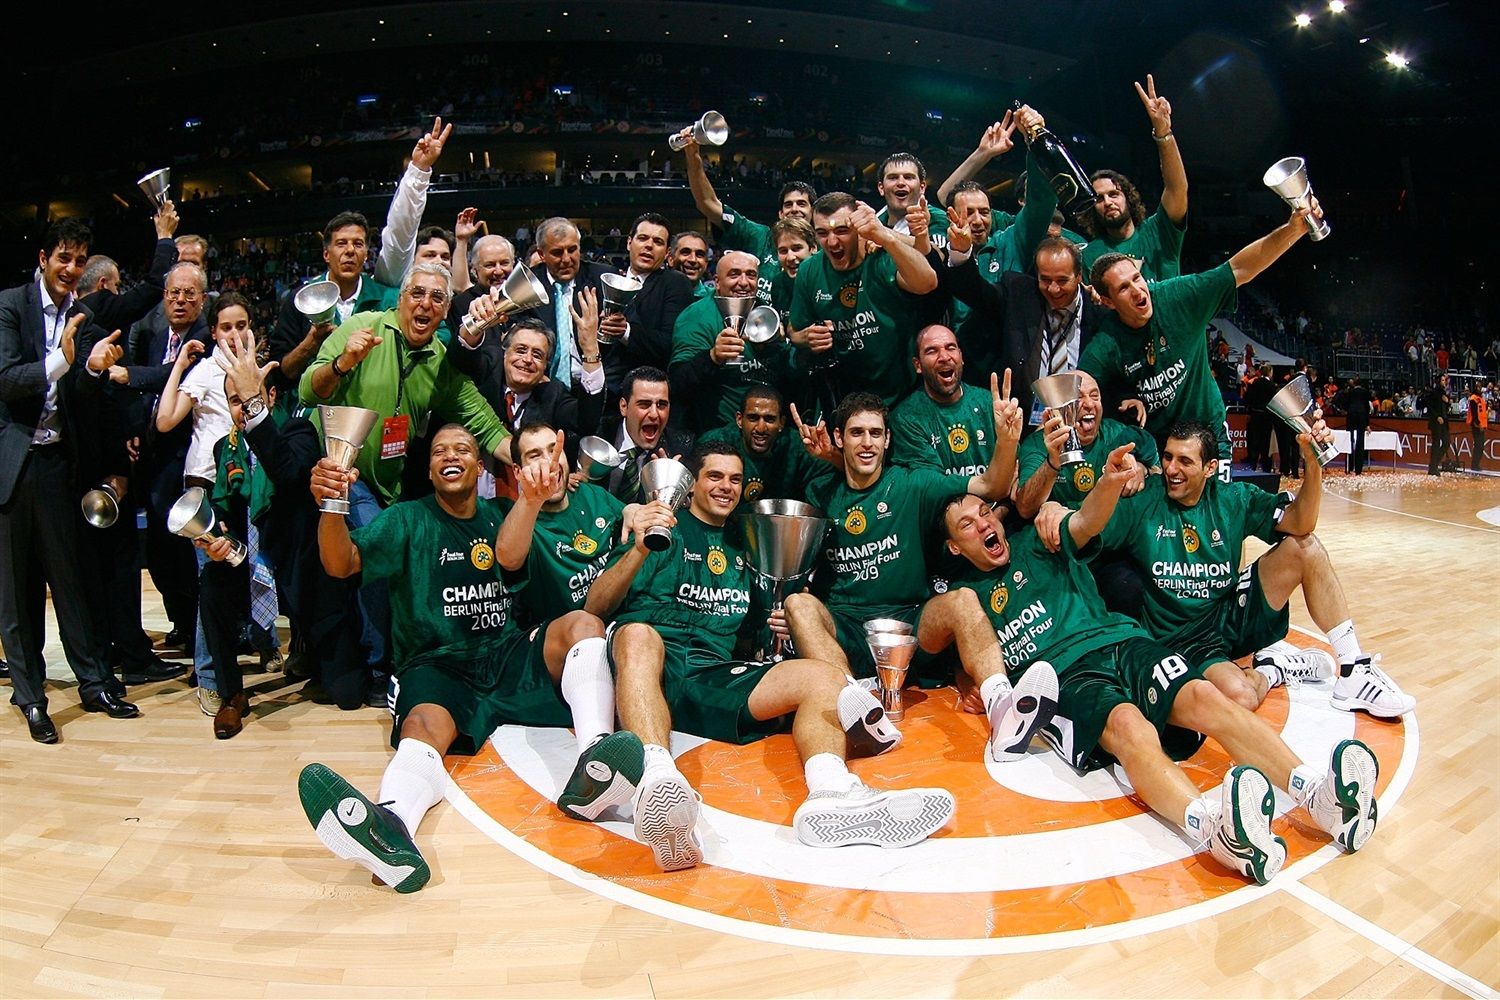 Panathinaikos is Champ 2008-09 - Final Four Berlin 2009